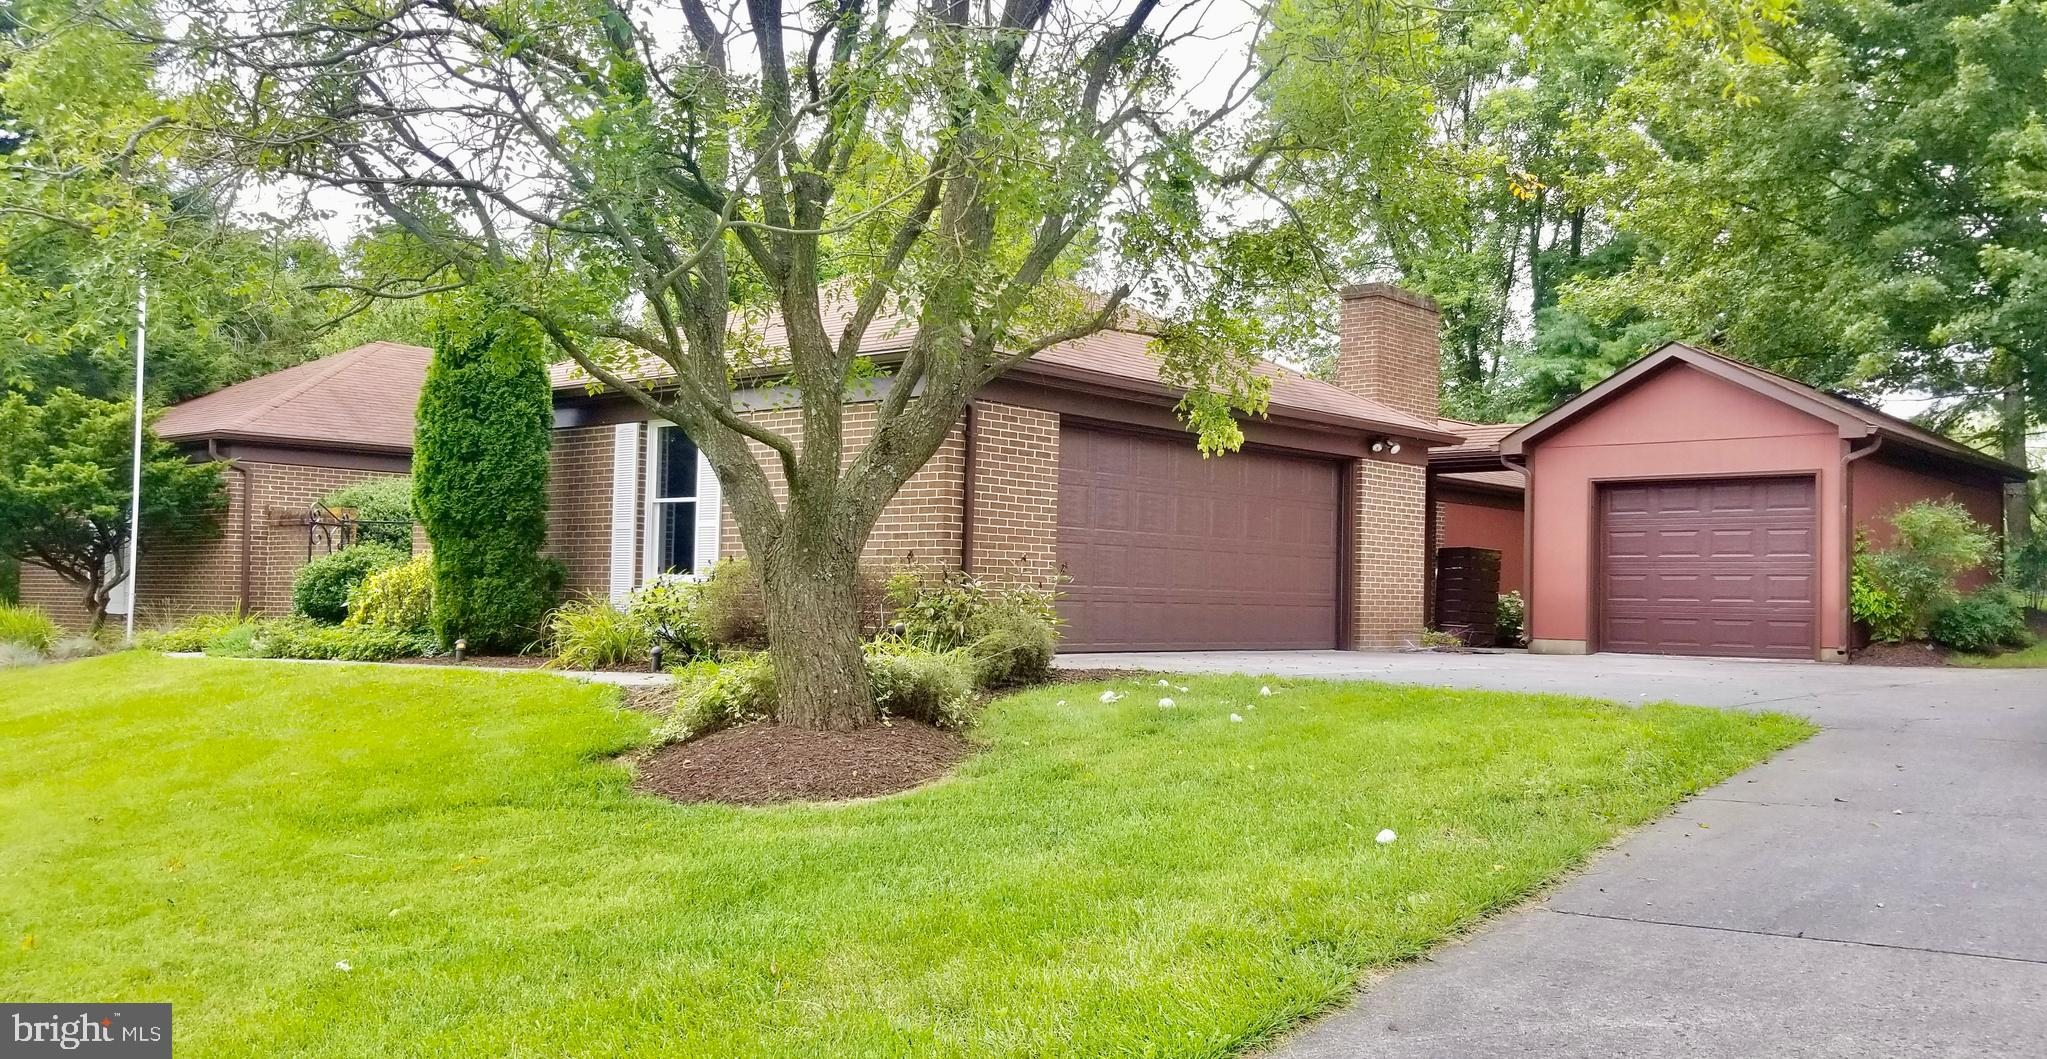 All brick ranch-style home on 3/4 acre lot just around the corner from Stonebrook Racquet & Fitness